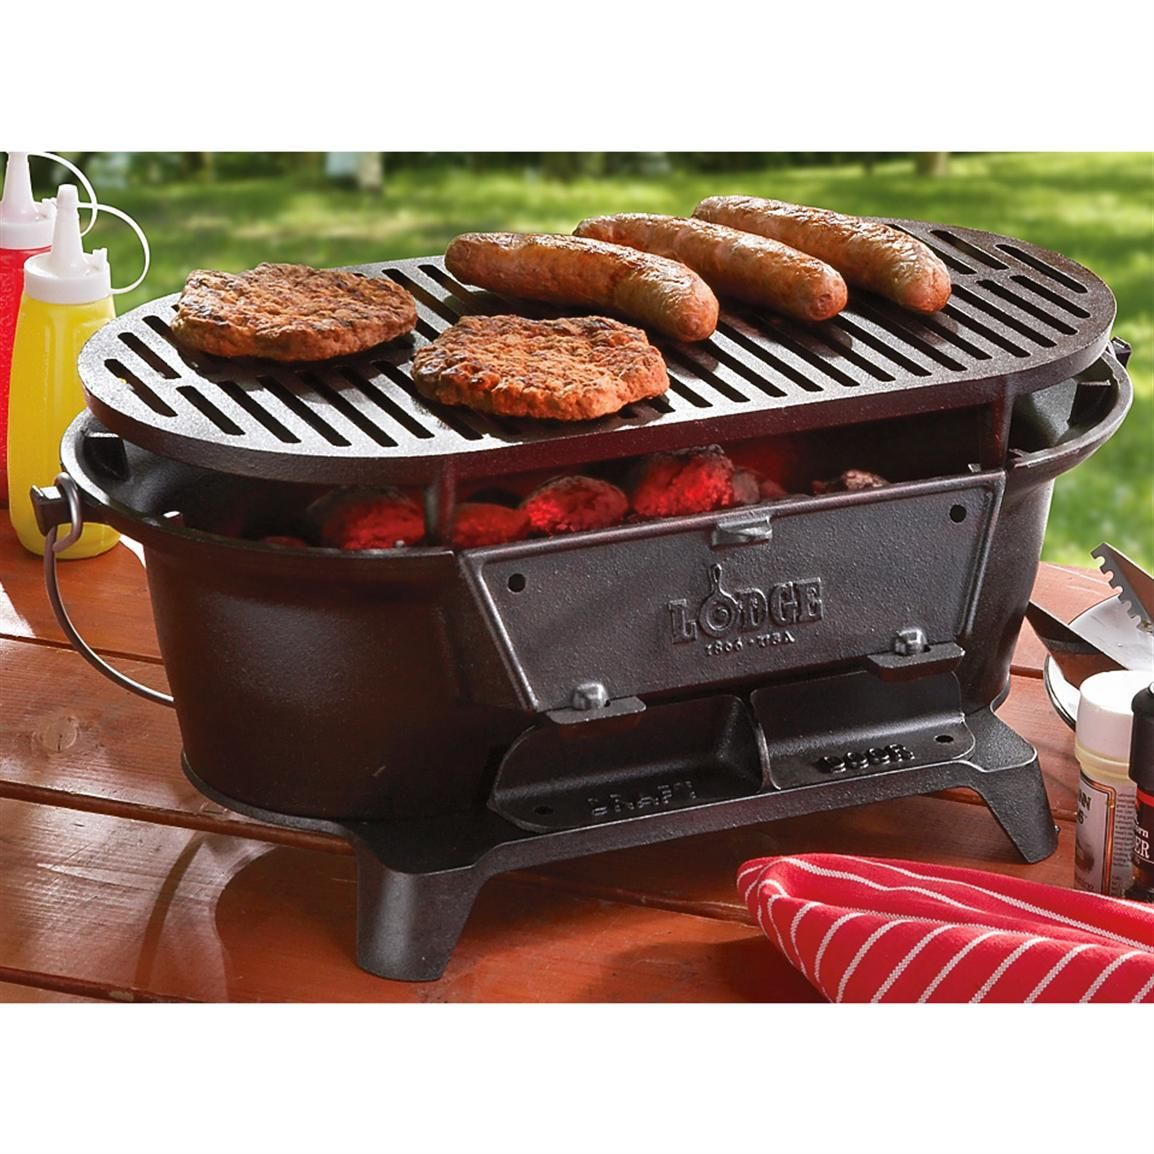 pregame with this lodge sportsman 39 s grill and you won 39 t be disappointed pick one up at the. Black Bedroom Furniture Sets. Home Design Ideas